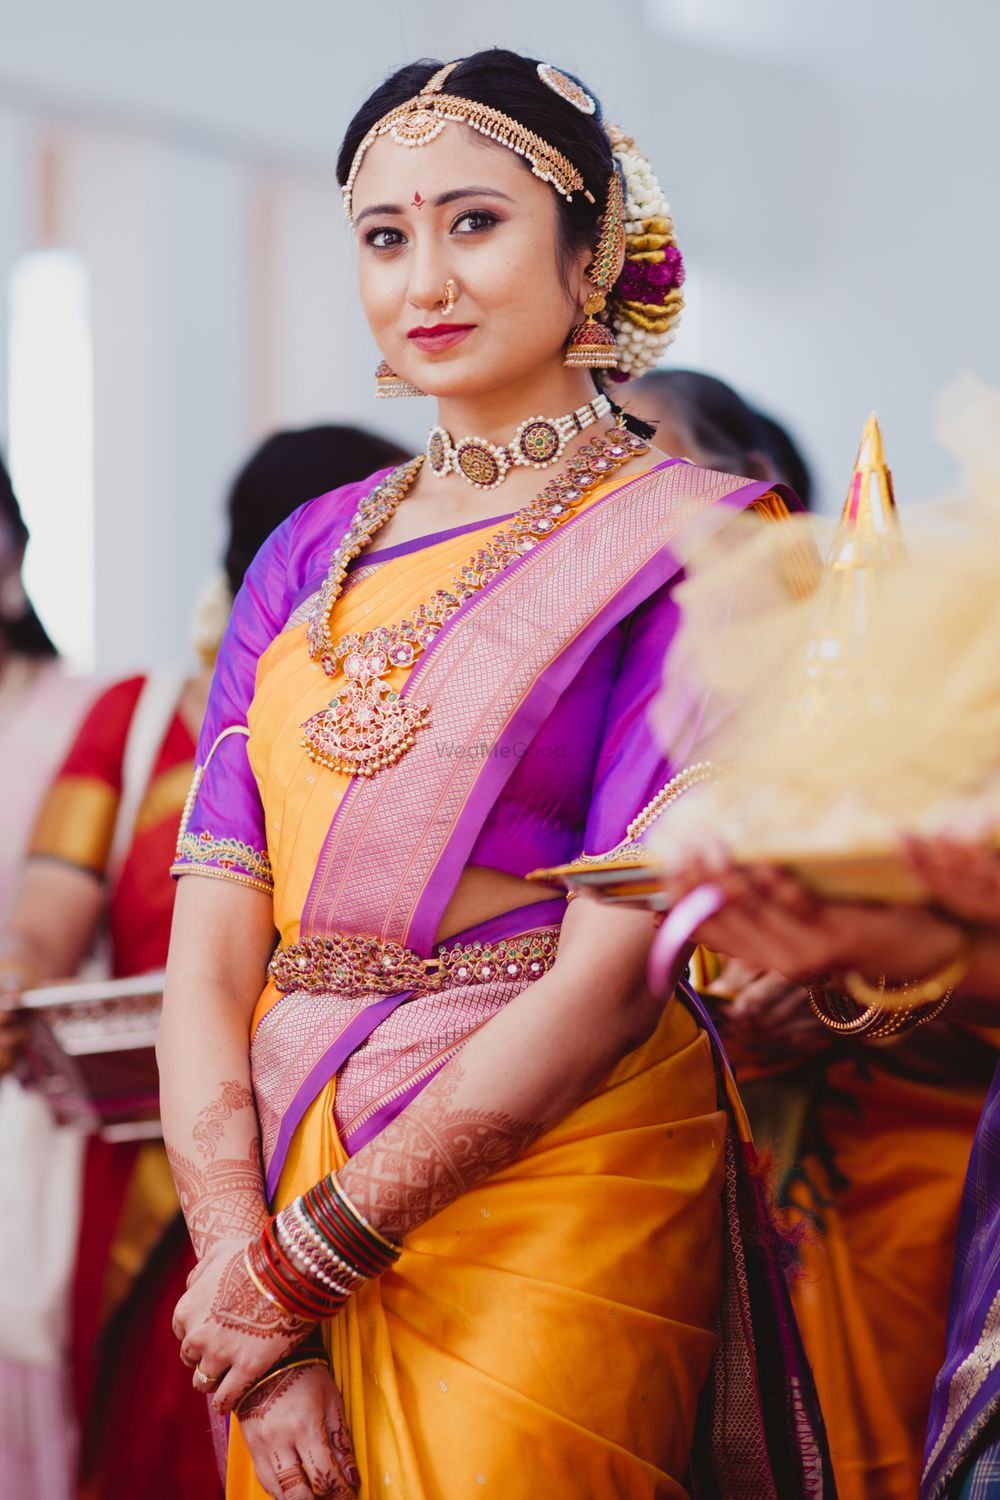 Photo of South Indian bride wearing an orange saree with a purple blouse.